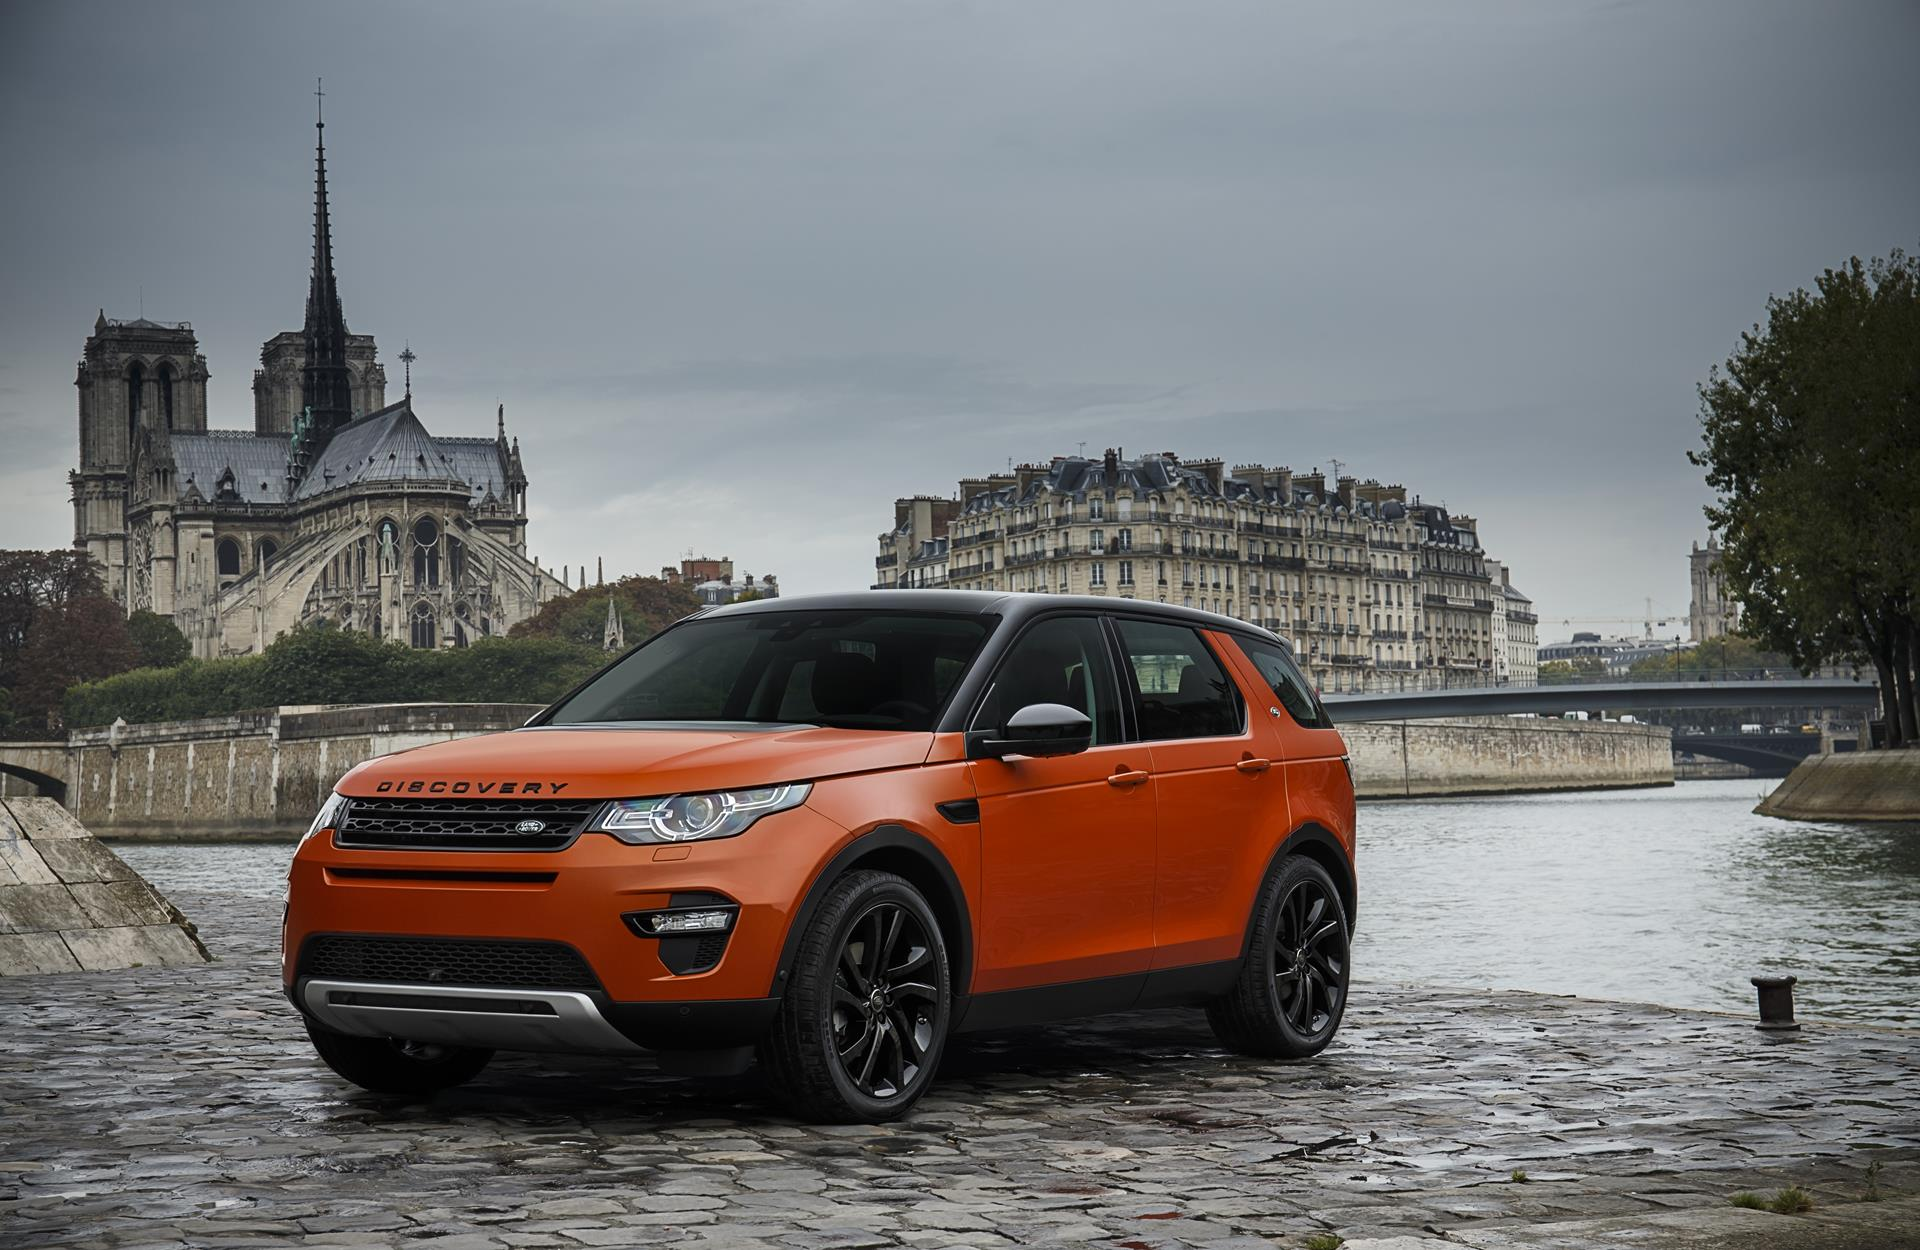 2015 land rover discovery sport news and information. Black Bedroom Furniture Sets. Home Design Ideas